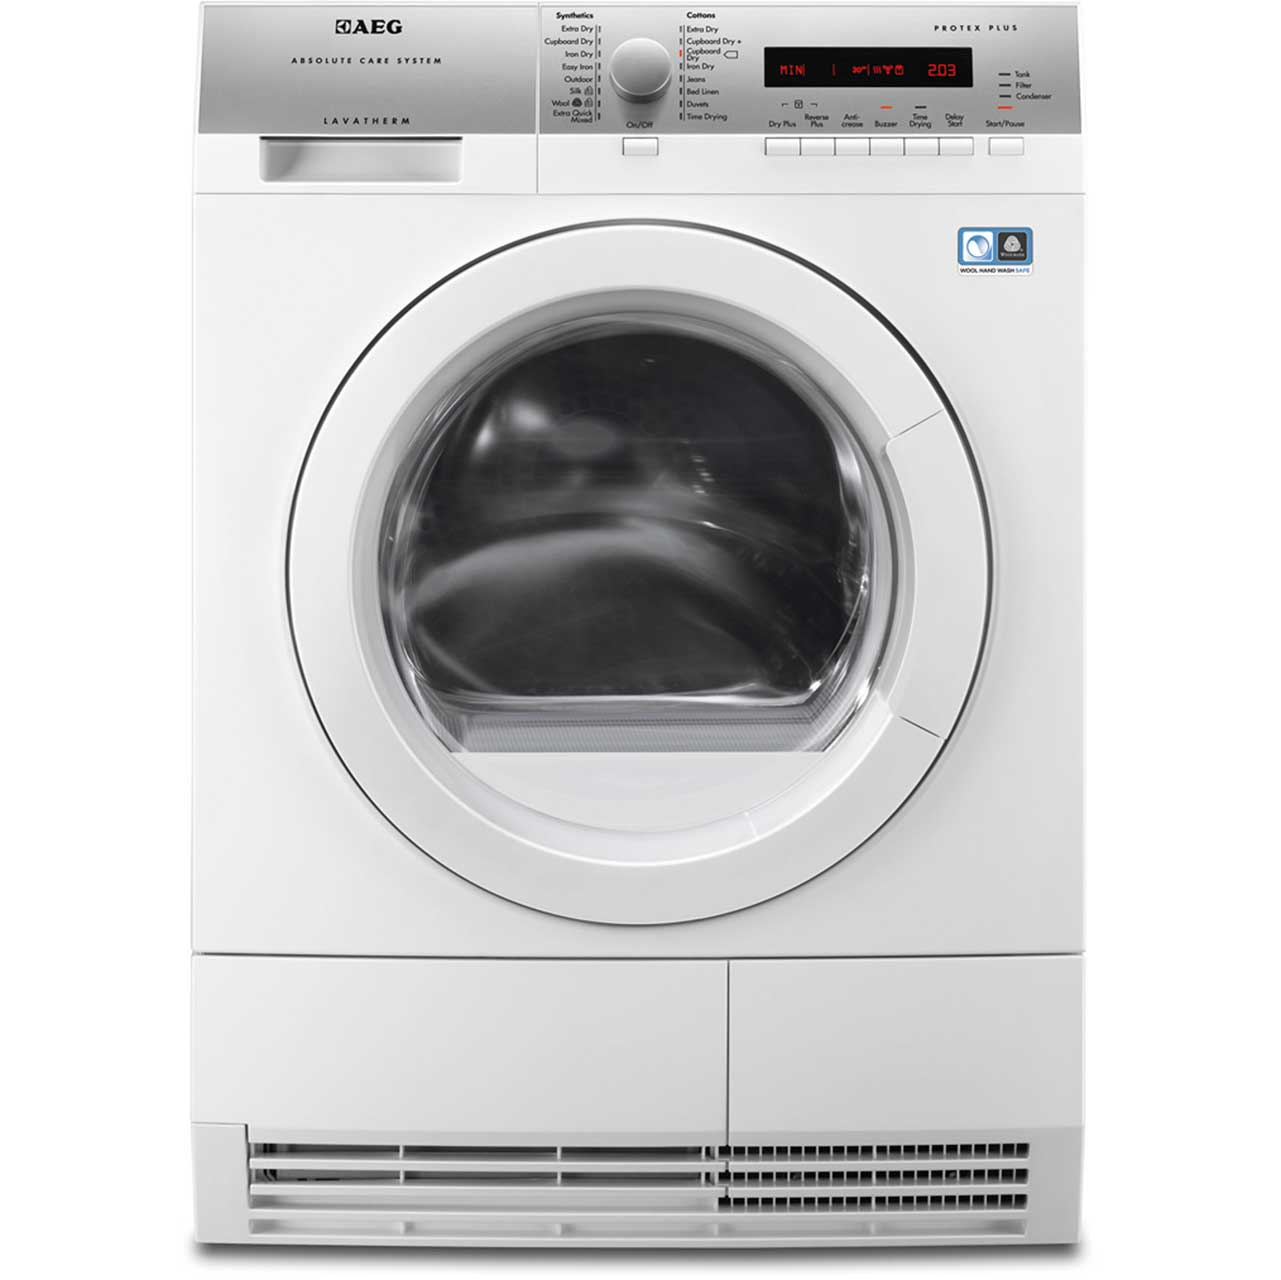 AEG Lavatherm T76781IH1 Free Standing Condenser Tumble Dryer in White